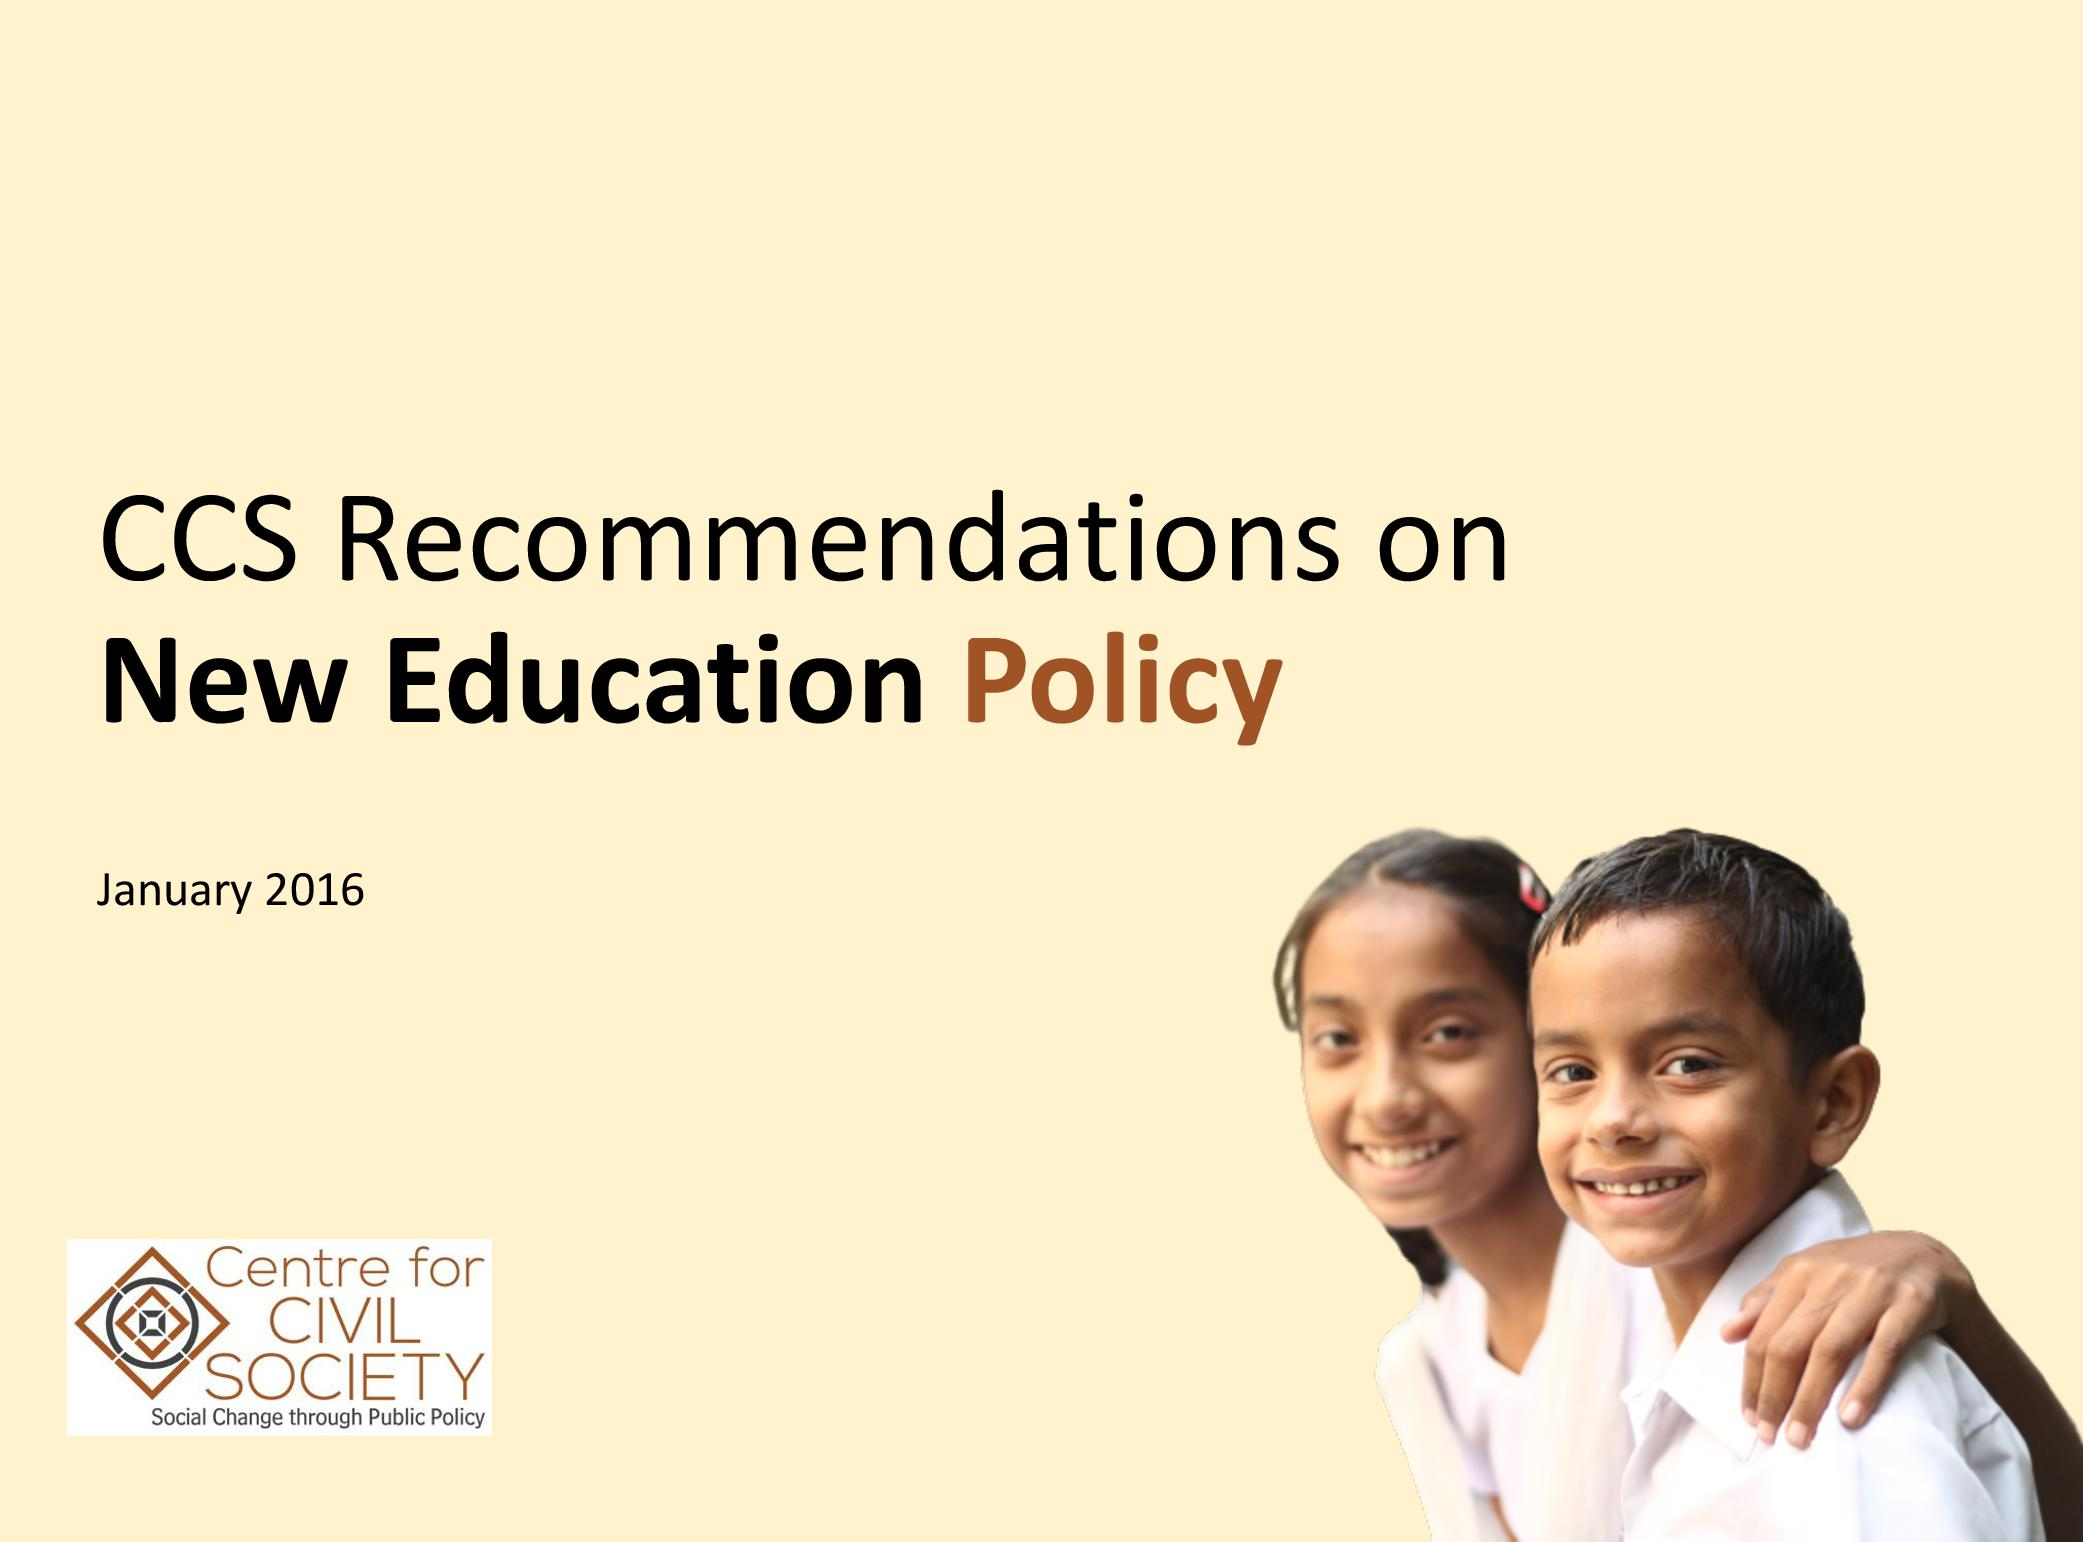 CCS Recommendations for New Education Policy